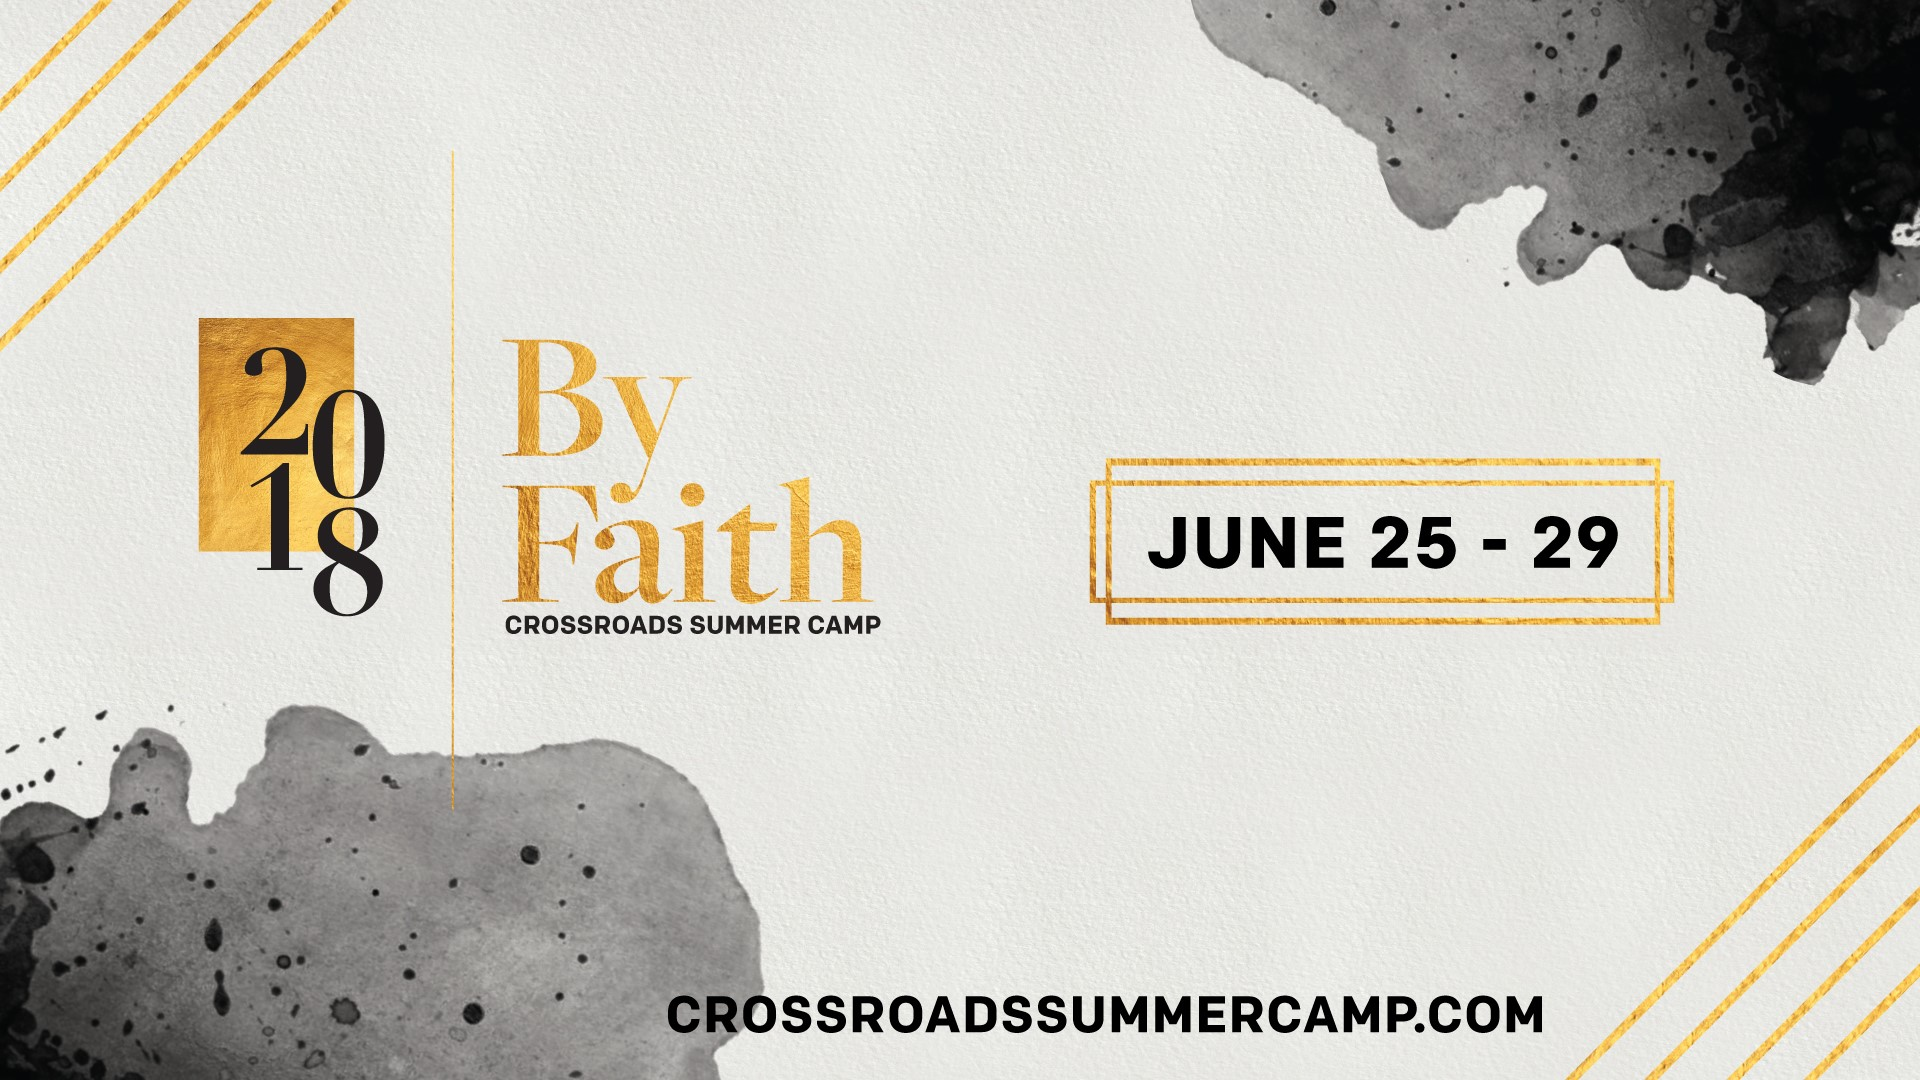 By Faith: Crossroads HS Summer Camp